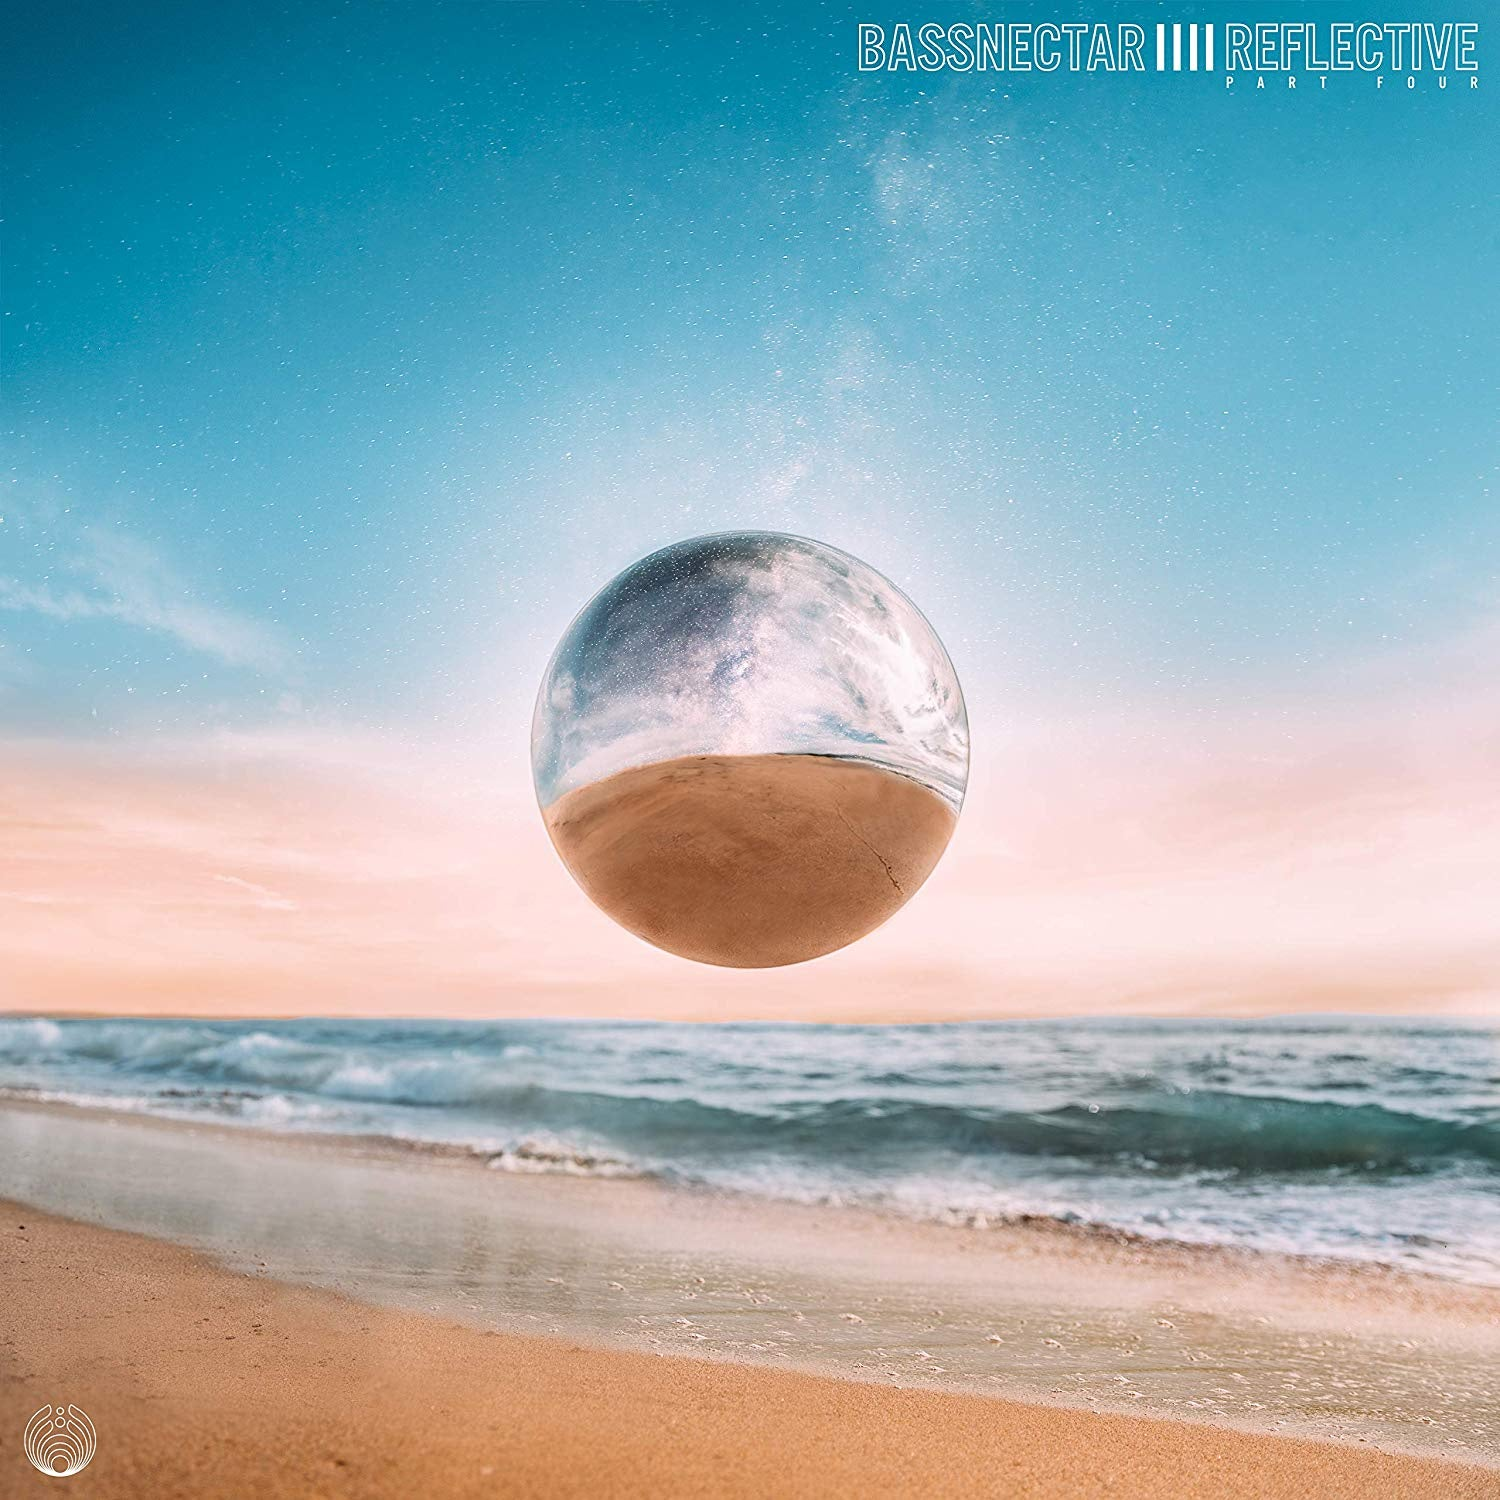 Bassnectar - Reflective Part Four - New LP Record 2019 Limited Edition 180g Colored Vinyl - Electronic